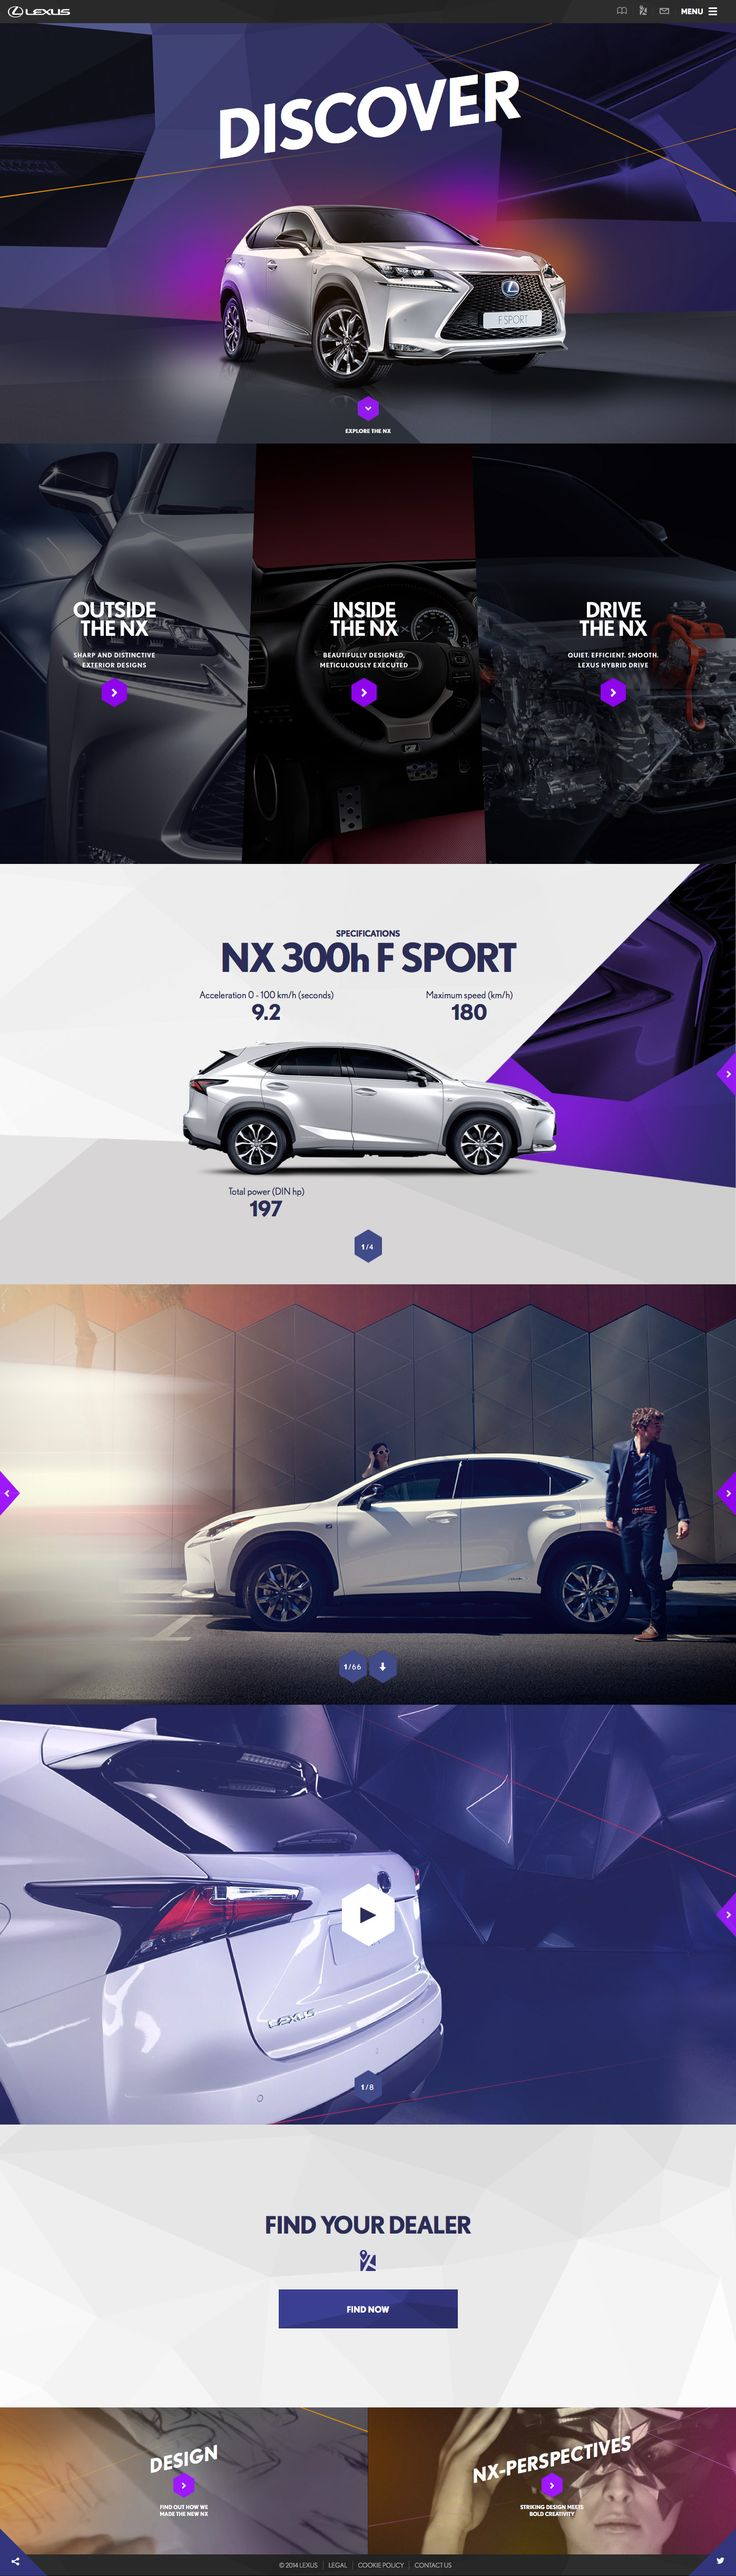 http://www.lexus.eu/car-models/nx/nx-house/index.tmex#/discover/find-dealer